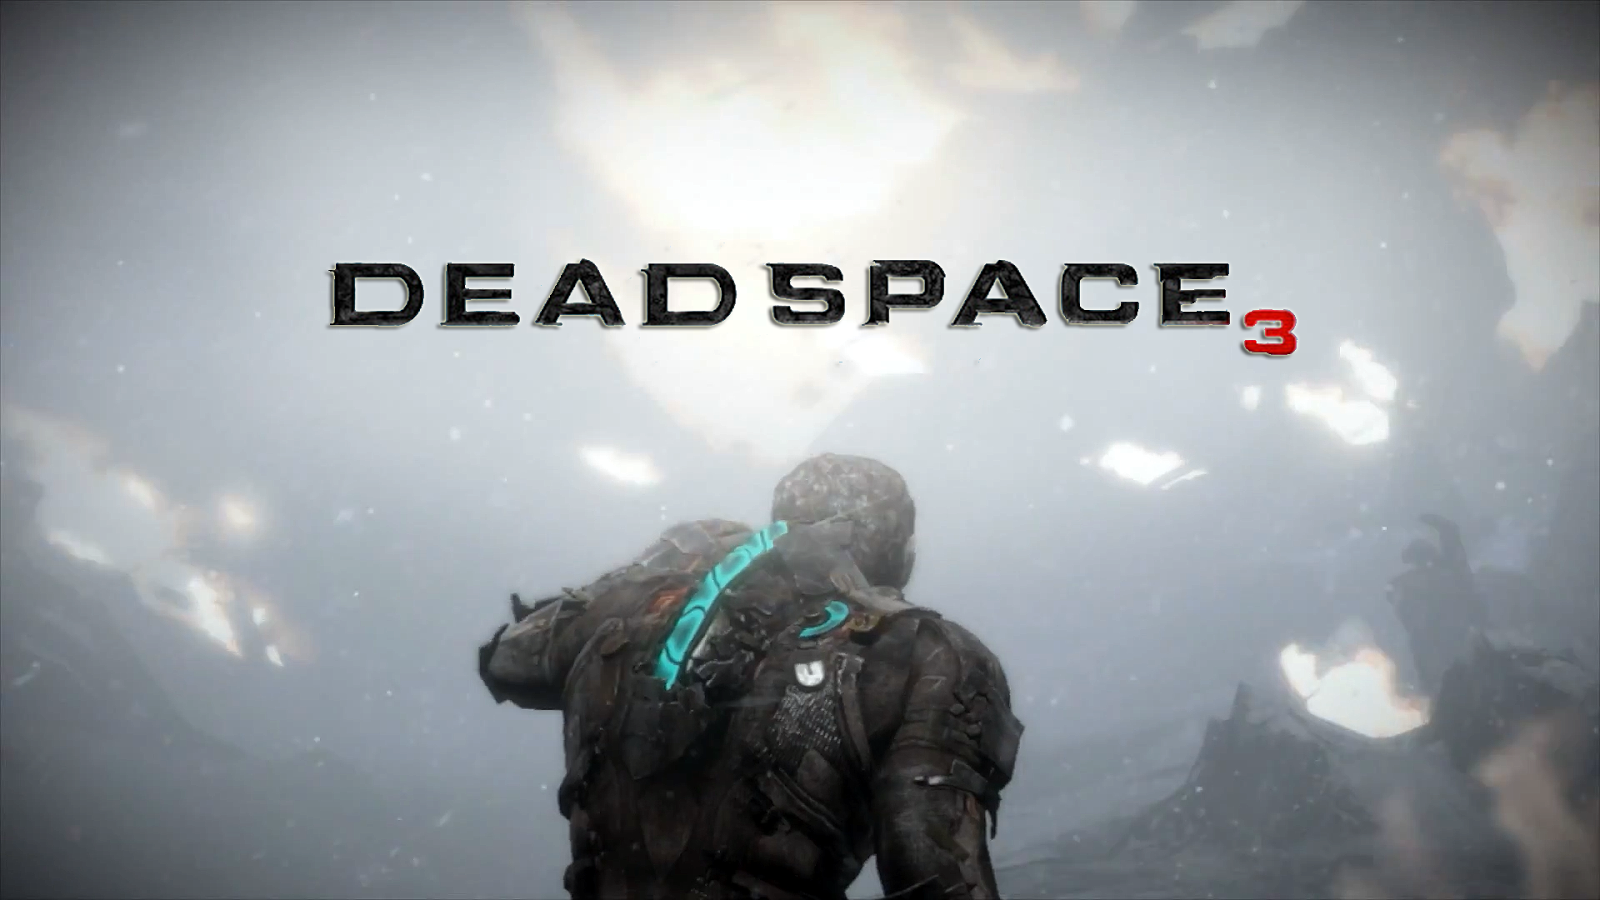 dead space 3 hd wallpapers check out the cool latest dead space 3 1600x900